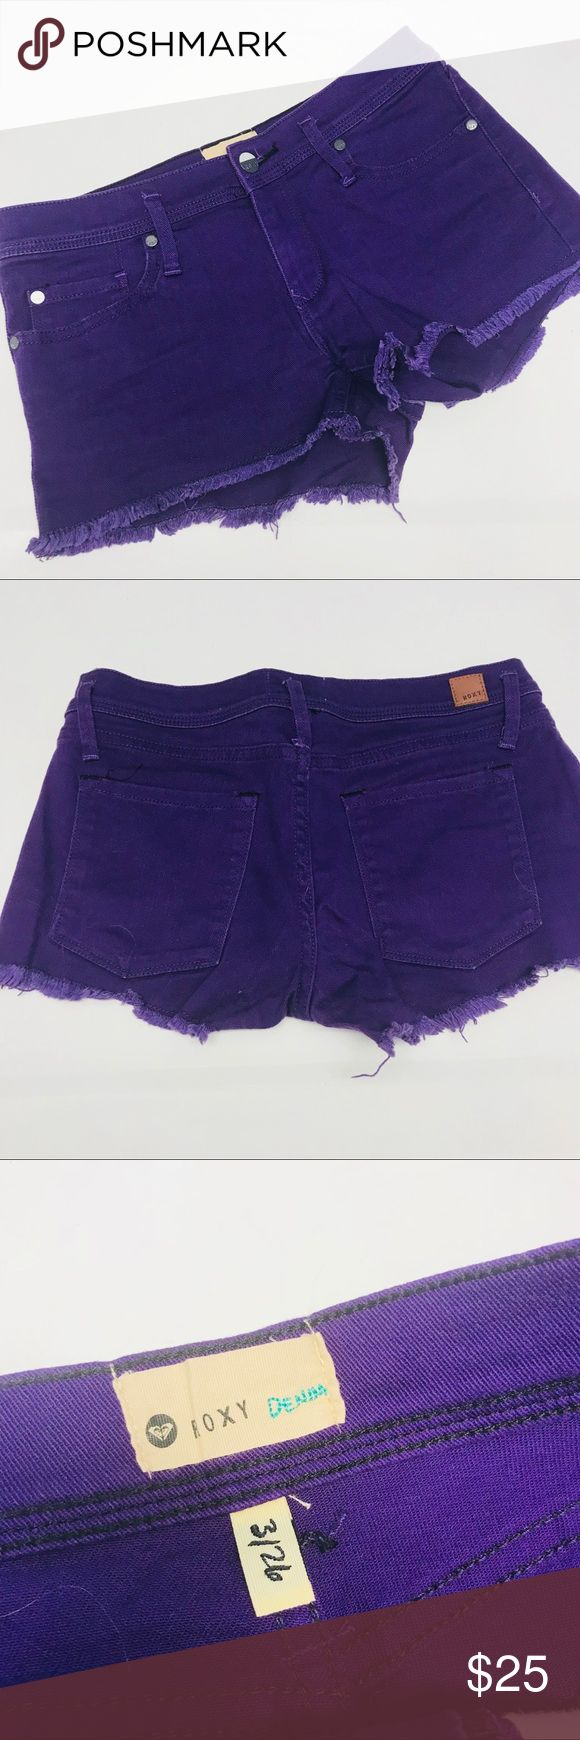 🌿ROXY🌿 purple jean shorts size 3 EUC purple shorts shorts by Roxy. Worn maybe 3 times. 🌻waist measures 26 inches  🌻intentionally fraying on hem  🌿no trades🌿 🌿bundle for 10% off🌿 Roxy Shorts